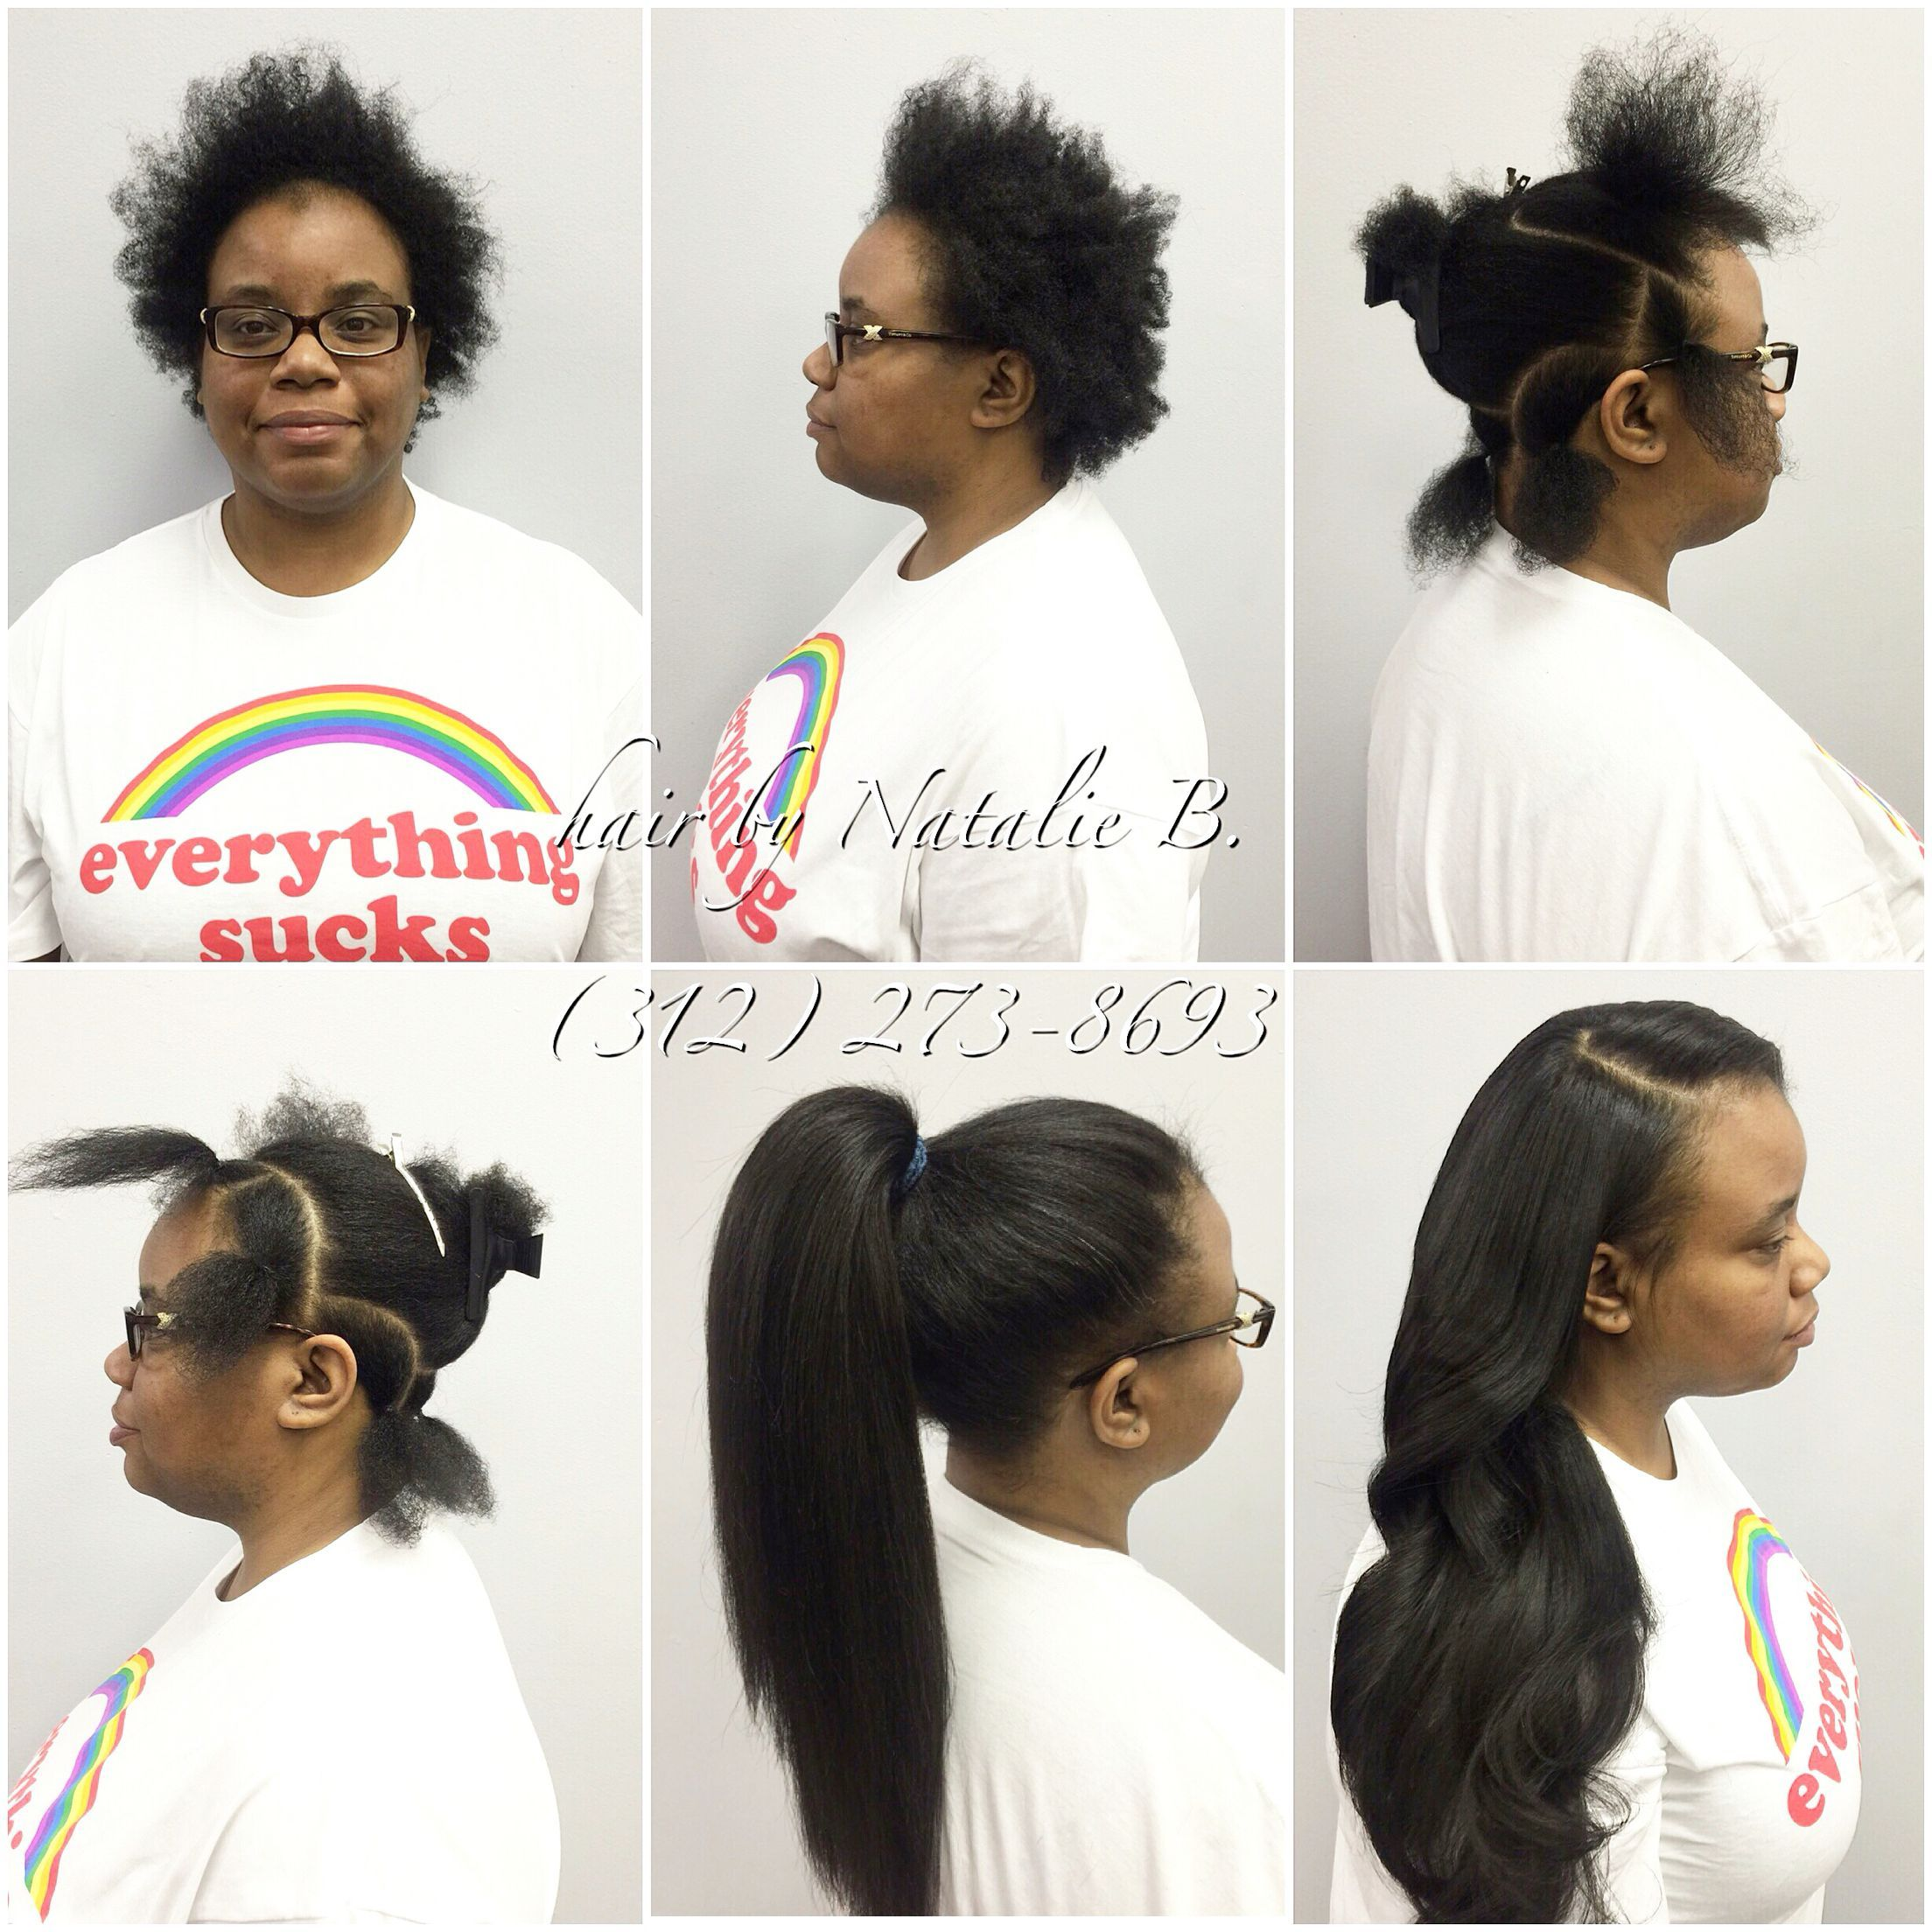 Finally A True Versatile Sew In That Looks Like Her Real Hair When Choosing The Best Matters The E Weave Hairstyles Hair Styles Short Hair Styles